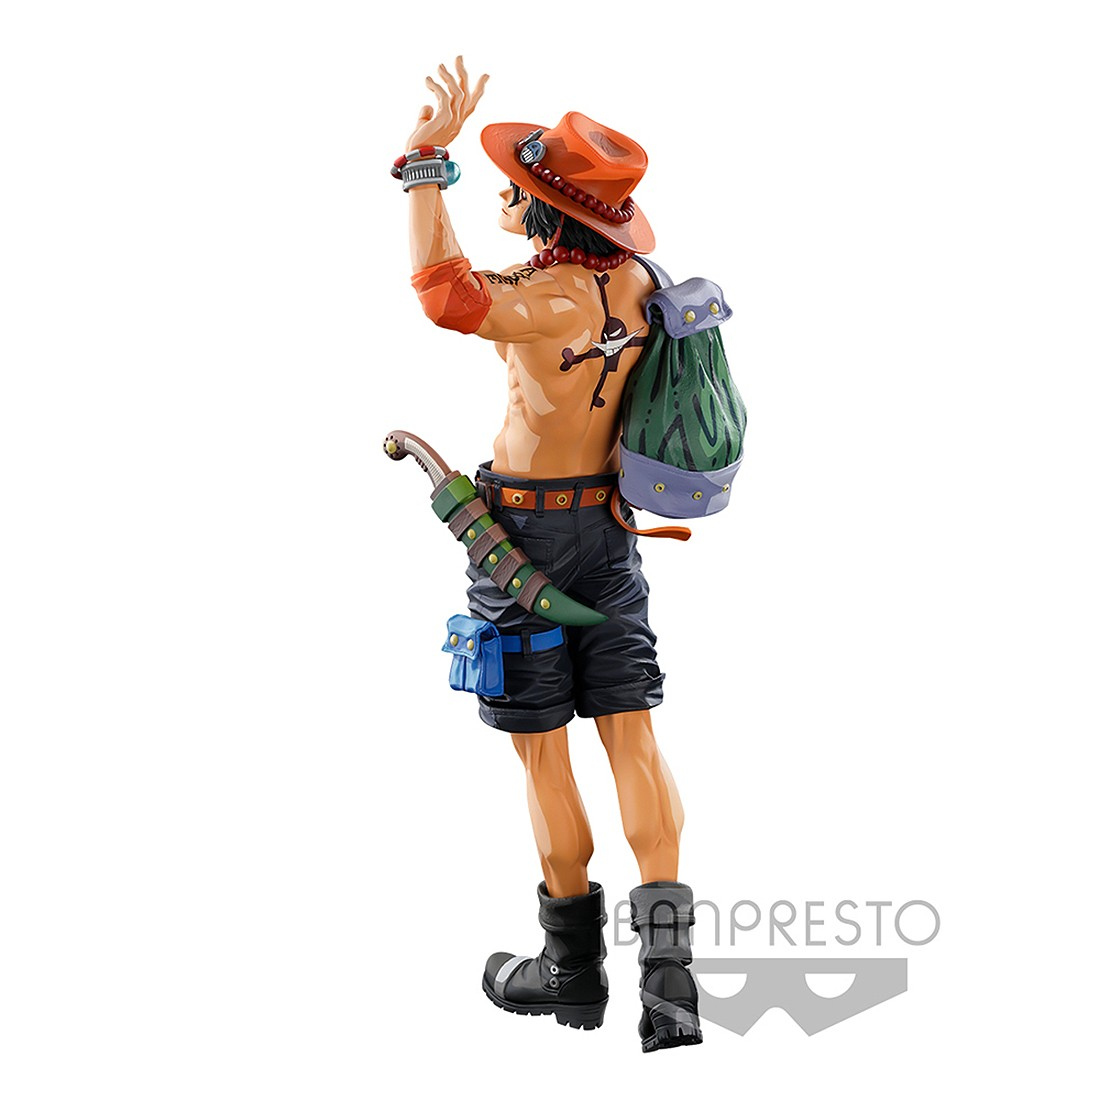 PREORDER - Banpresto One Piece Banpresto World Figure Colosseum 3 Super Master Stars Piece The Portgas D. Ace Two Dimensions Figure (tan)